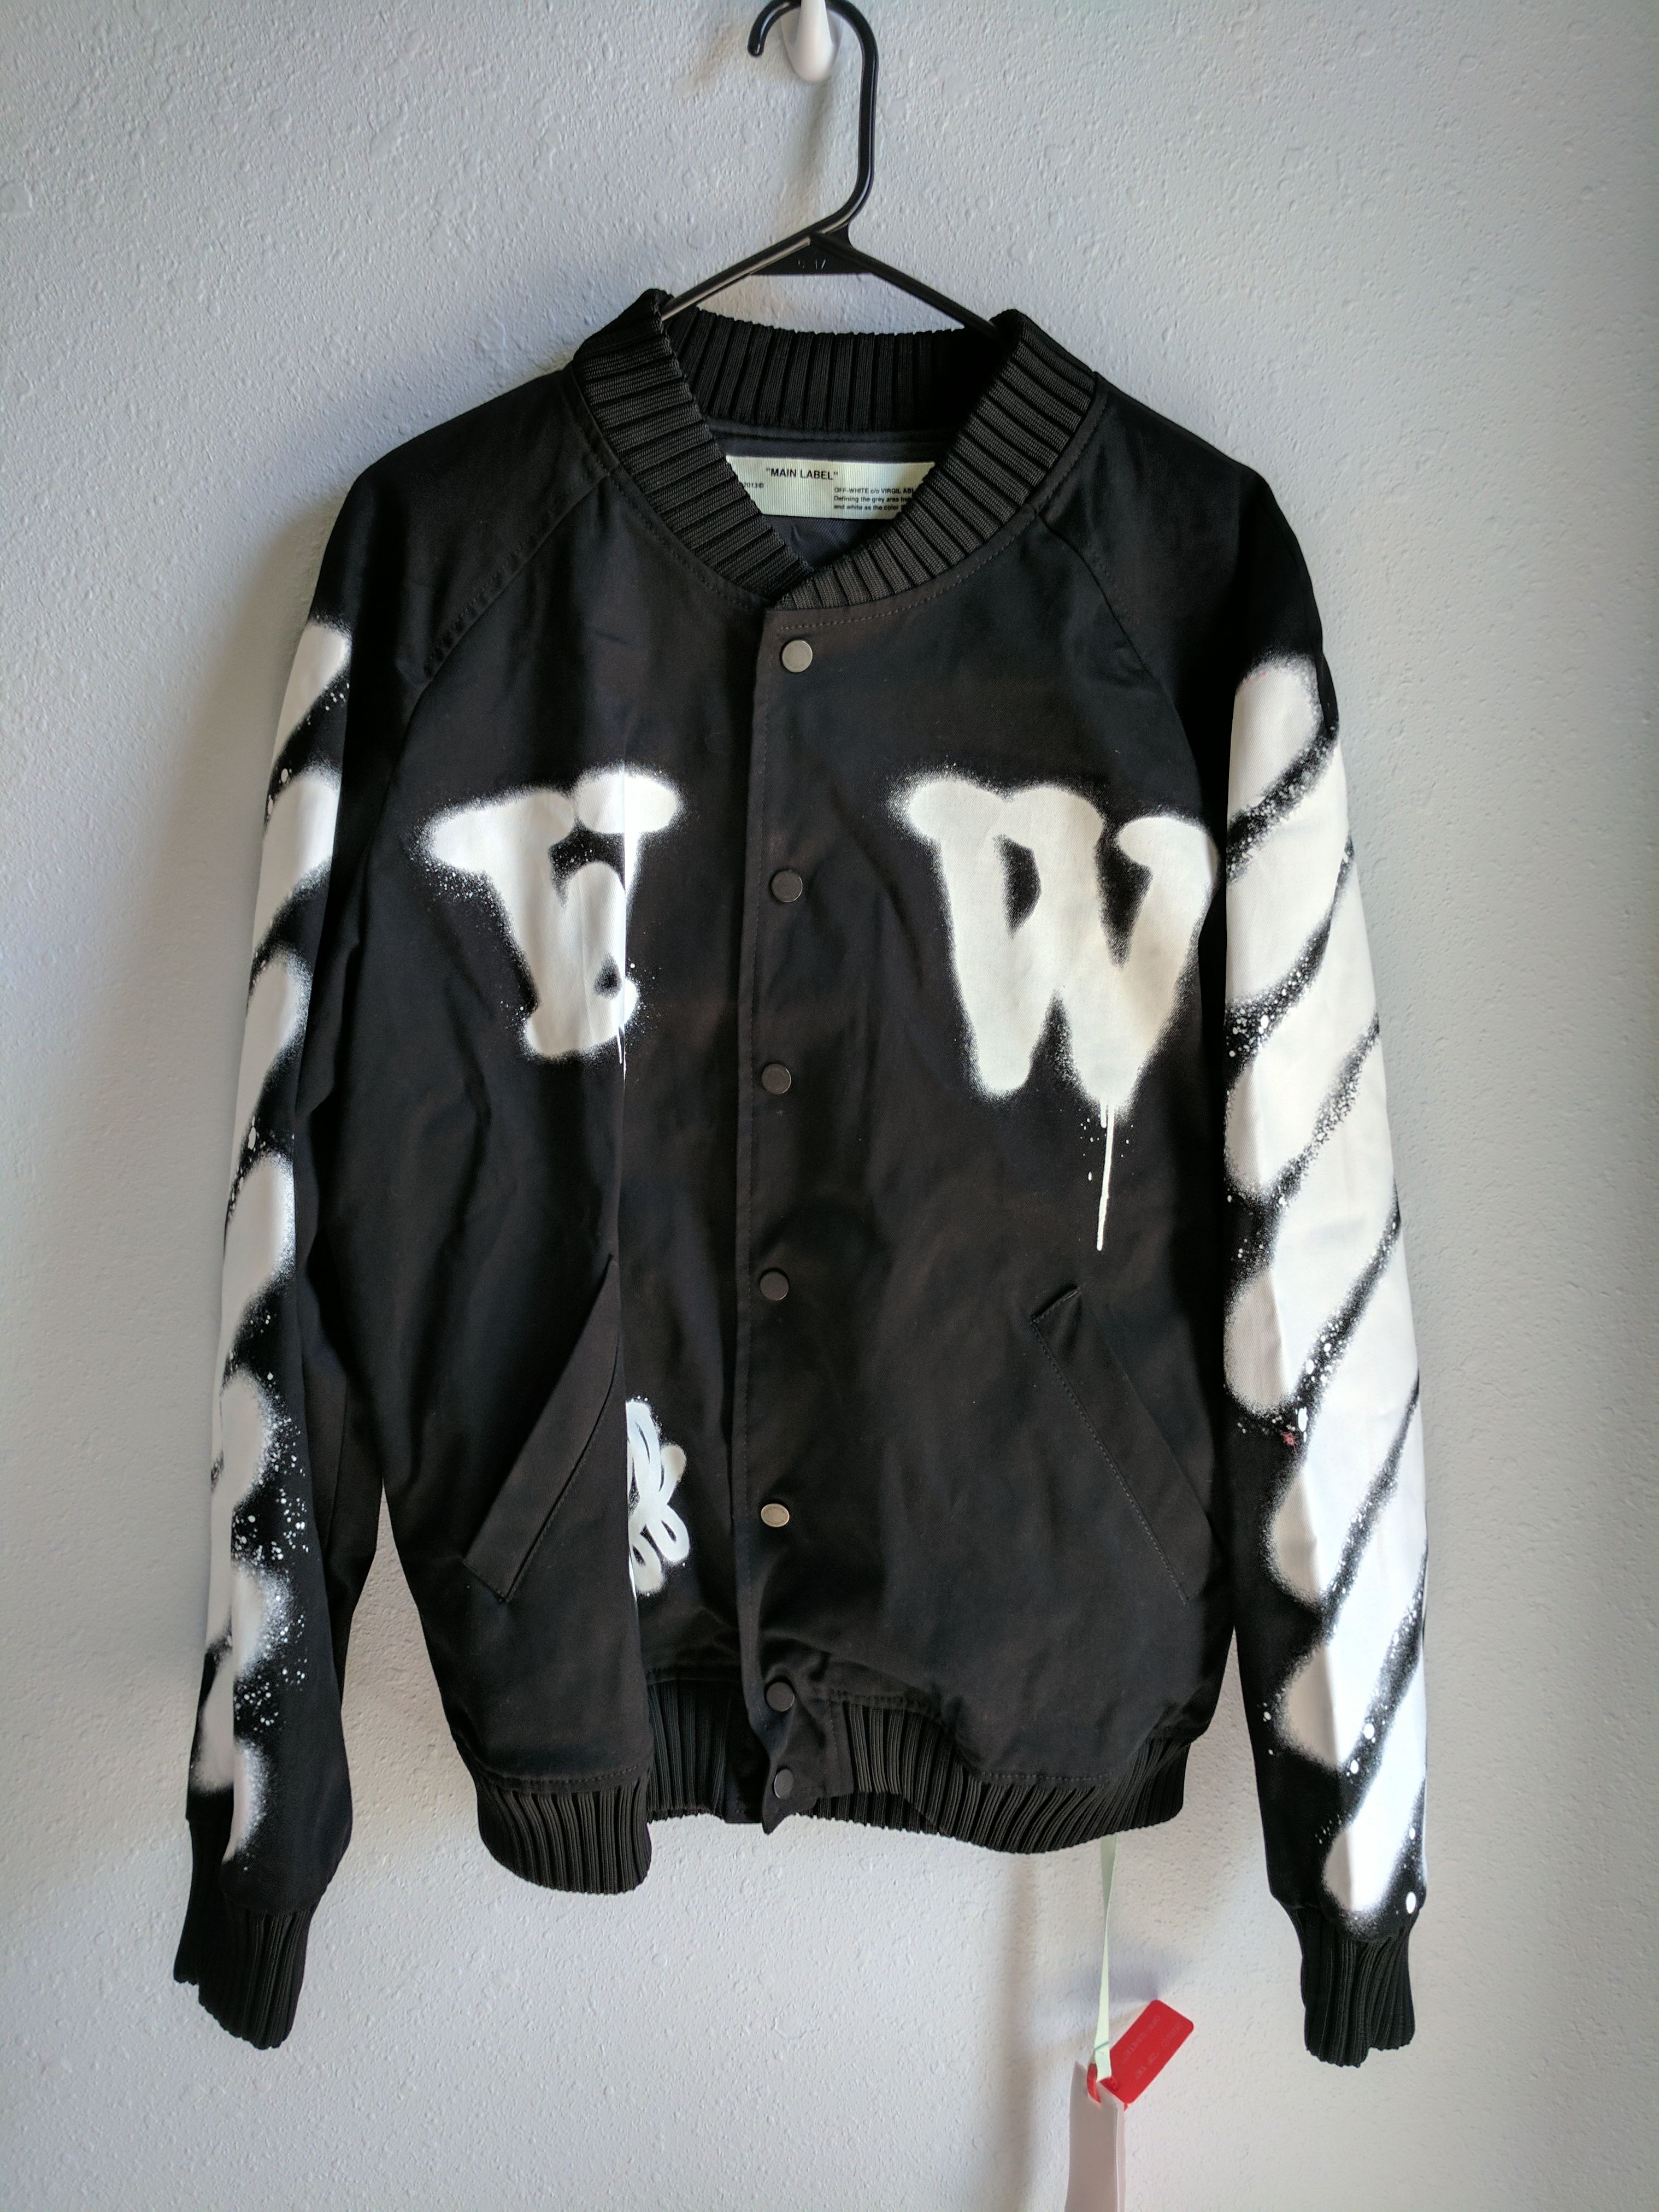 8a0a813c8aad Off-White Spray Paint Varsity Jacket Size l - Bombers for Sale - Grailed